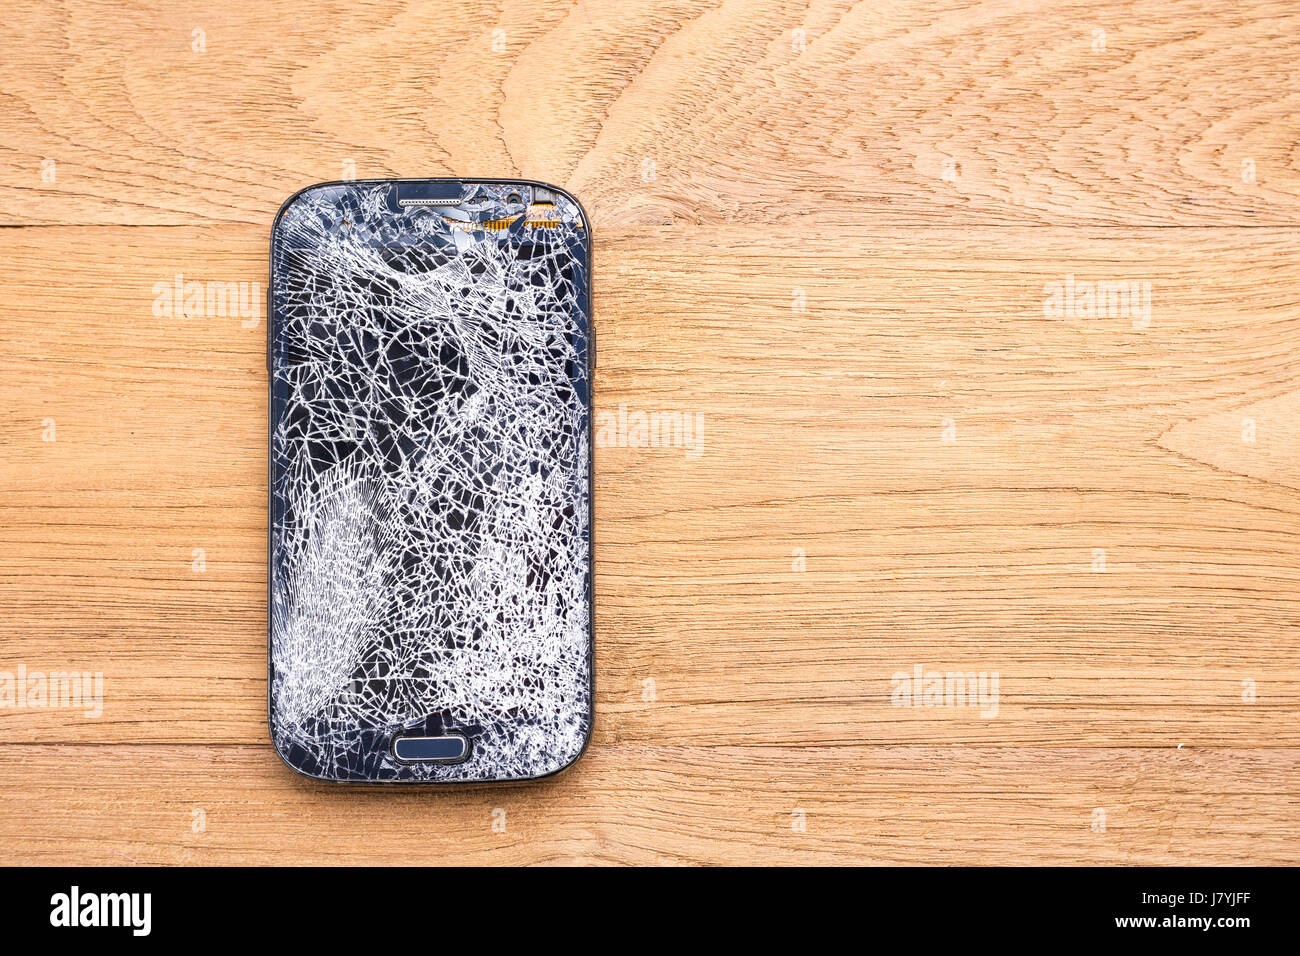 Top View Broken Of Black Smart Phone On Wooden Table Background